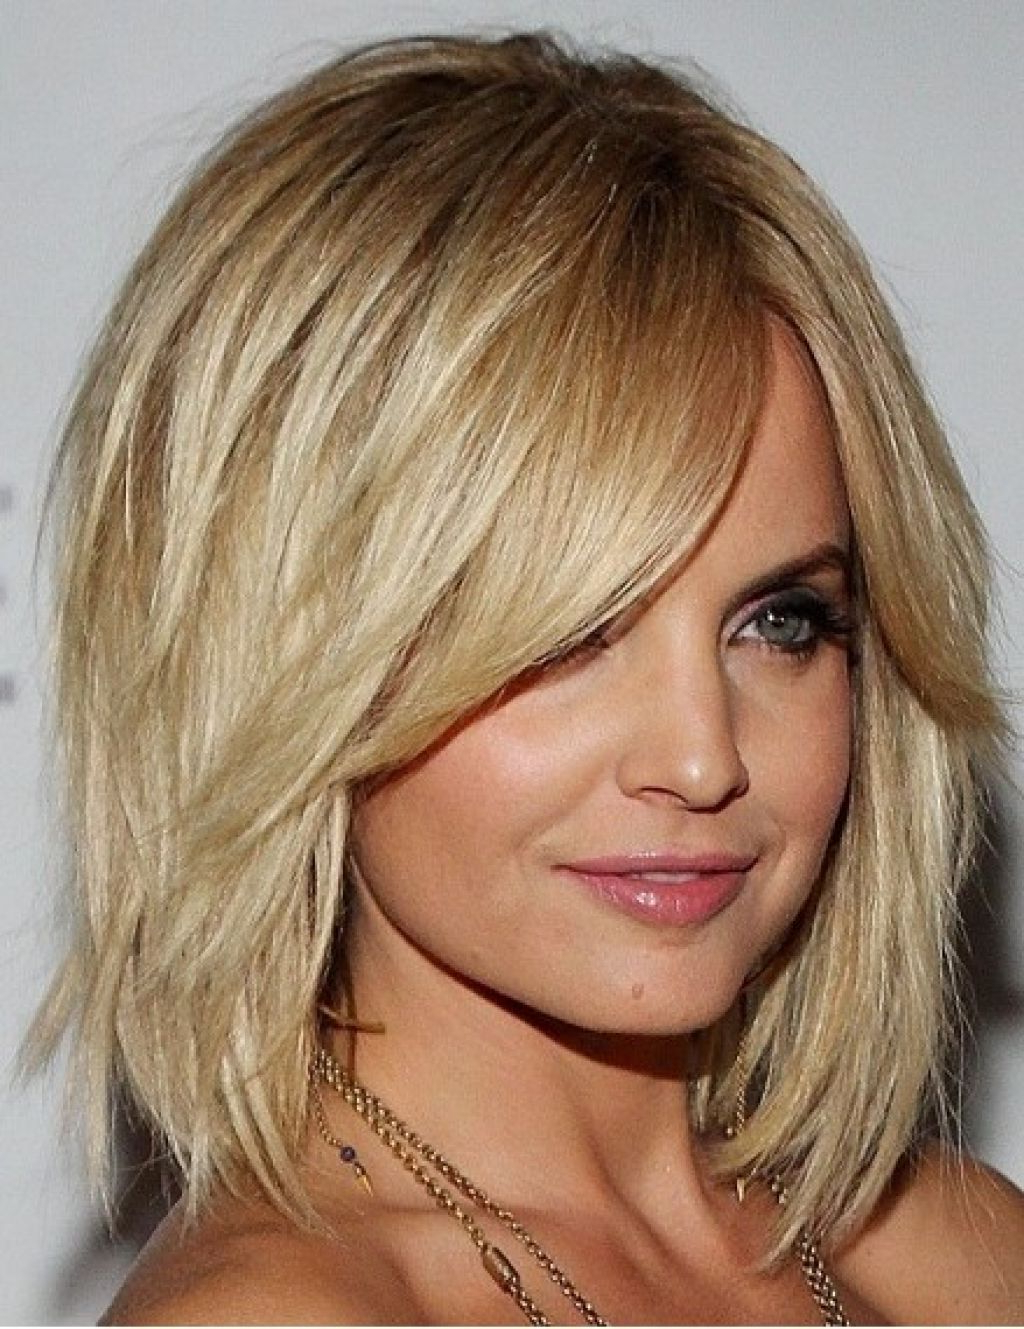 Everlasting With Regard To Widely Used Shoulder Length Layered Hairstyles (Gallery 3 of 20)